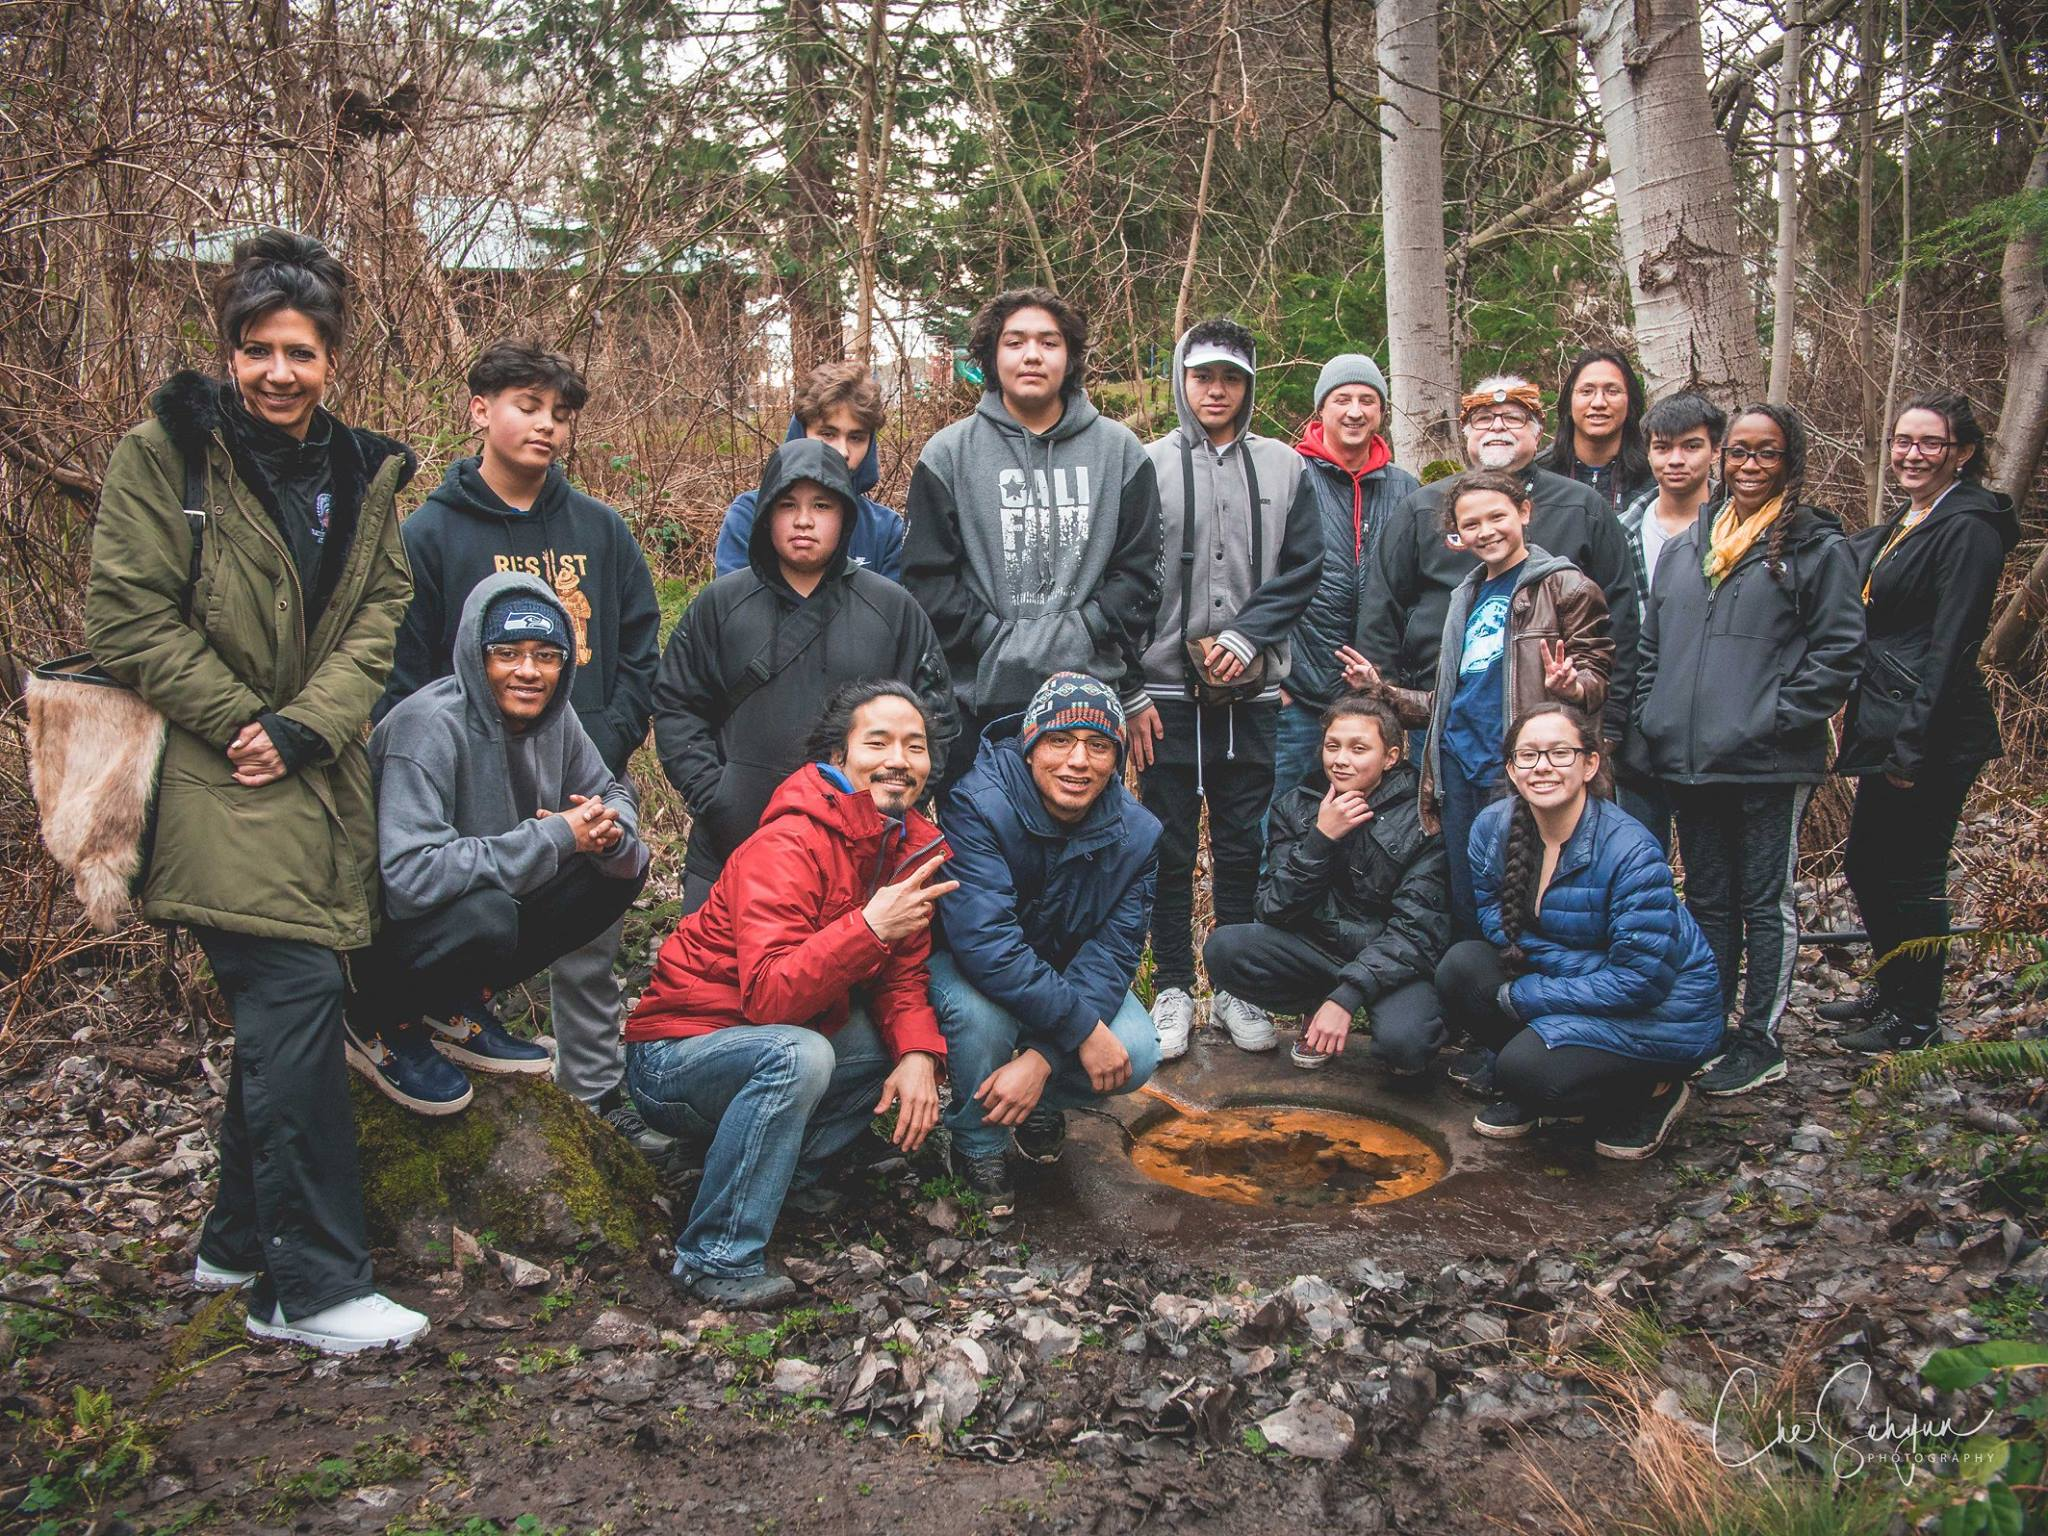 Clear Sky youth working on Licton Springs preservation